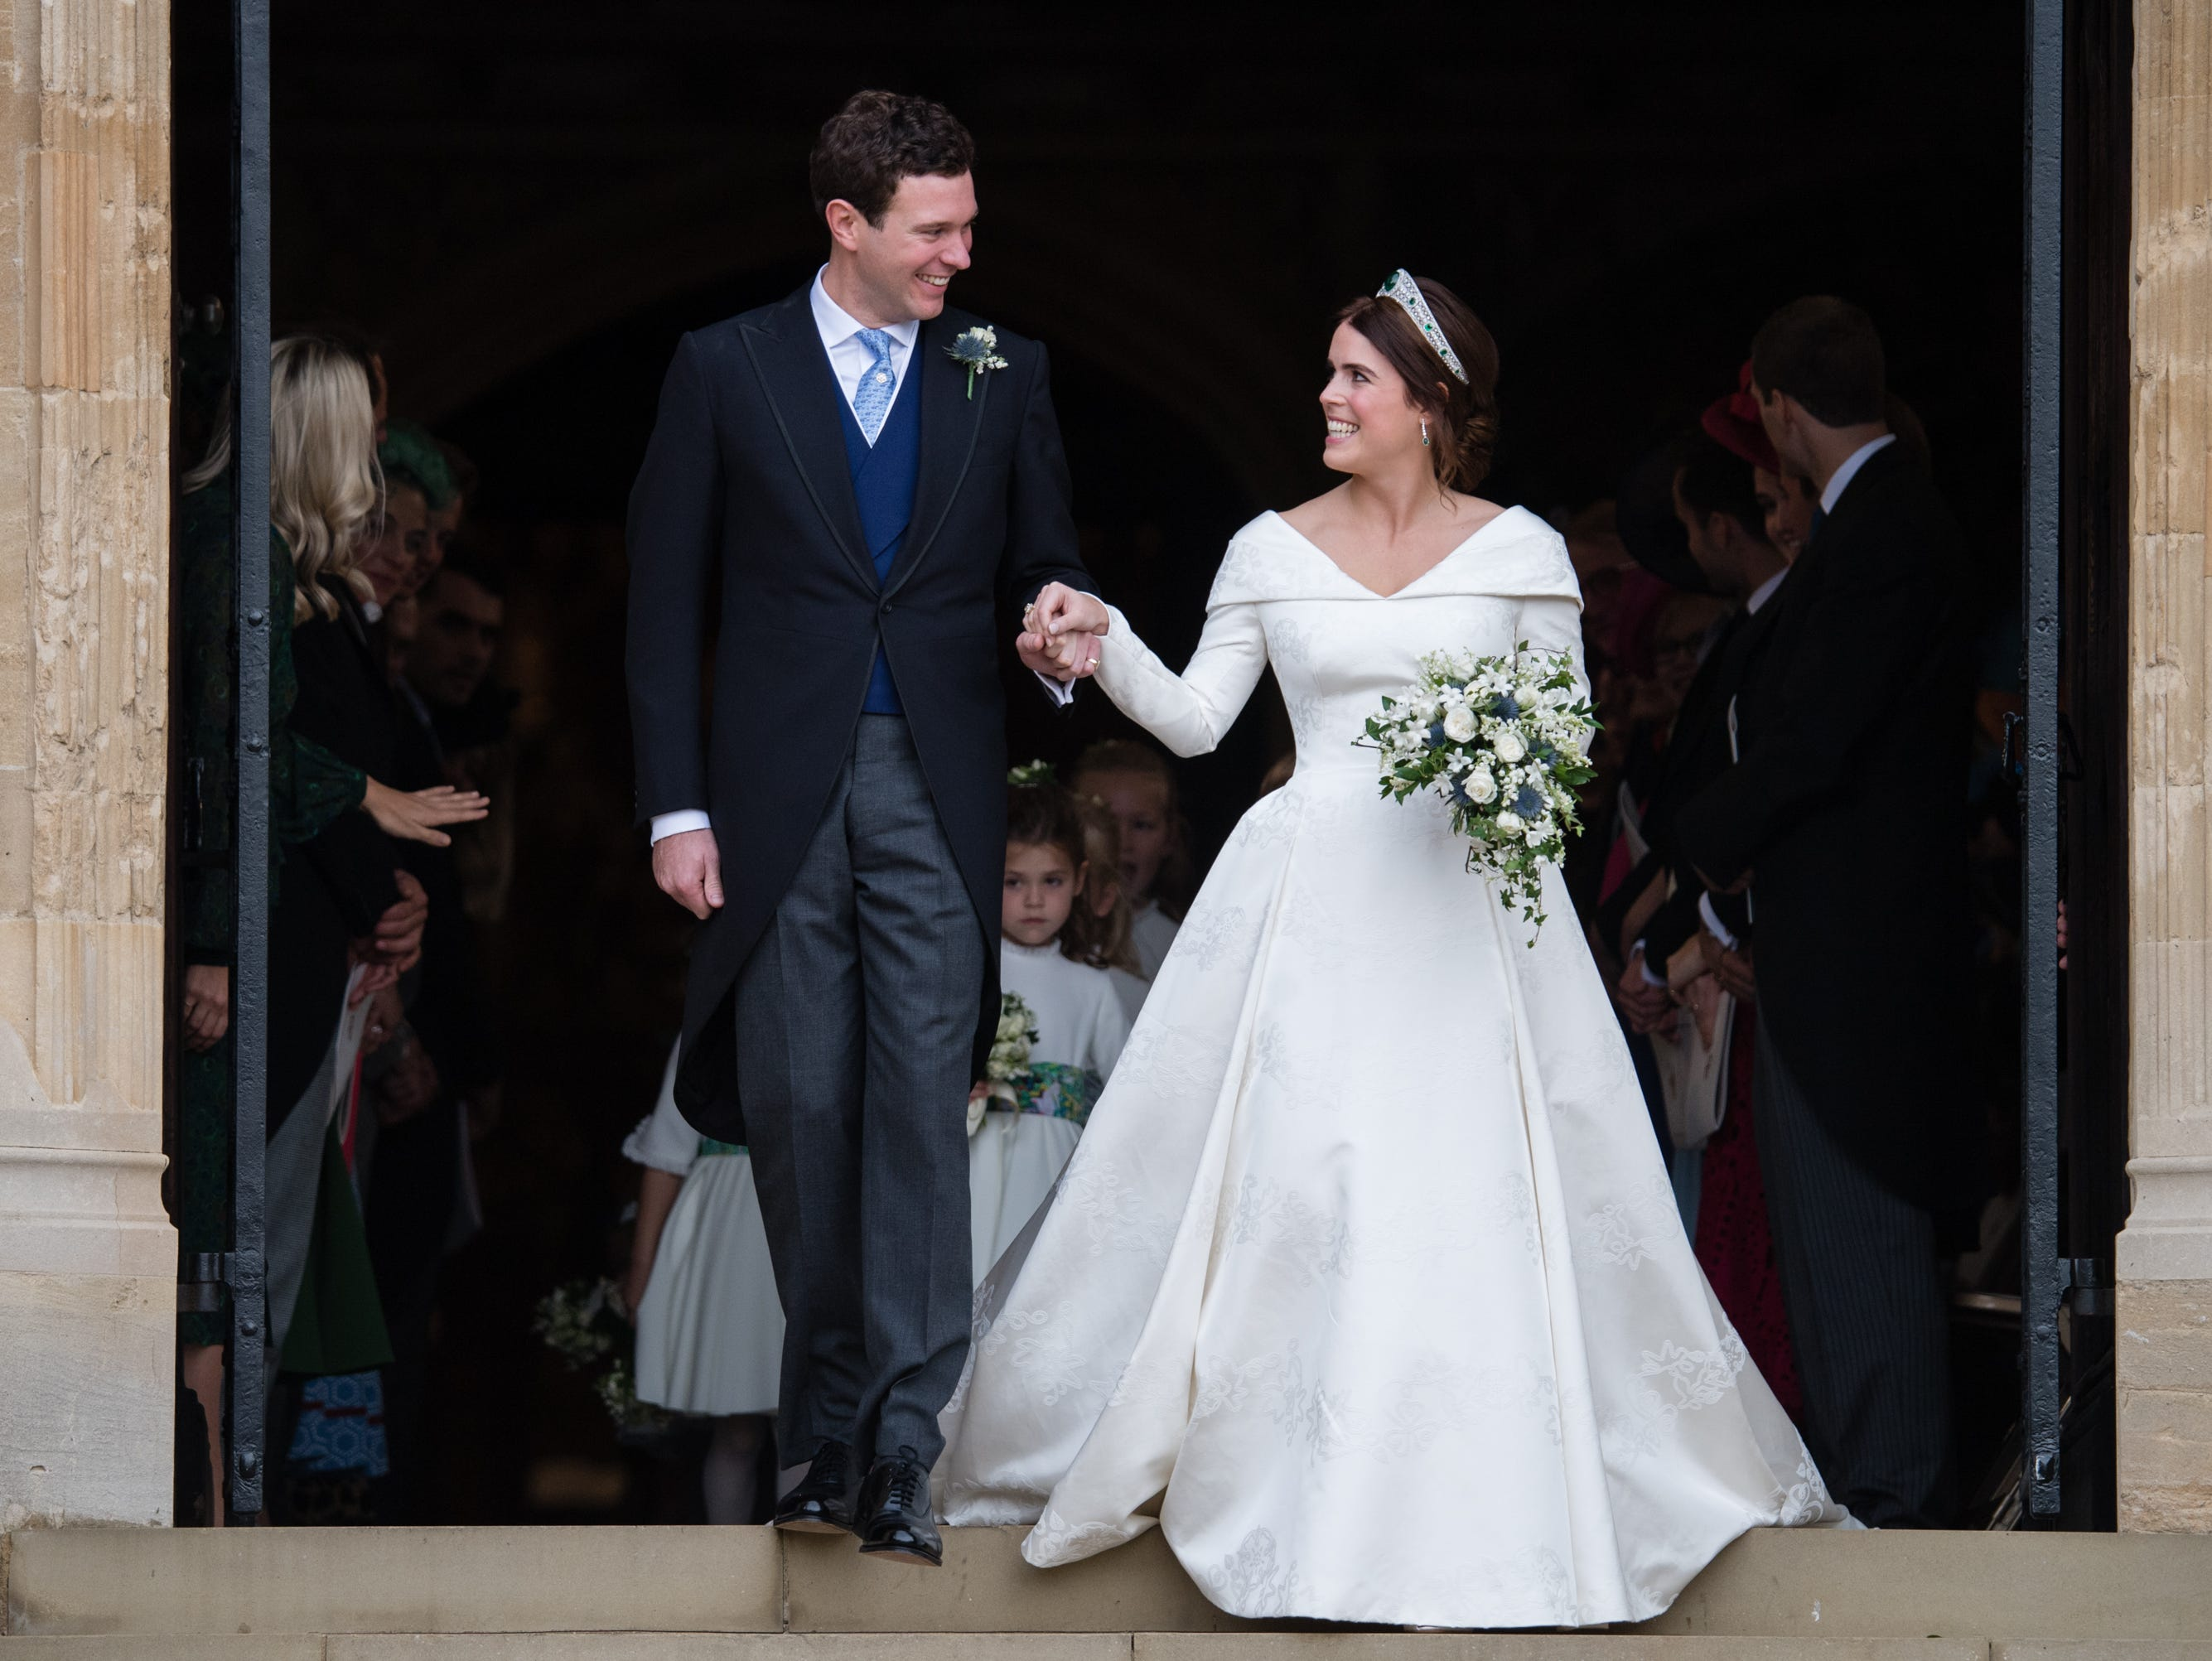 October 12: Princess Eugenie of York and Jack Brooksbank leave St George's Chapel in Windsor Castle following their wedding.